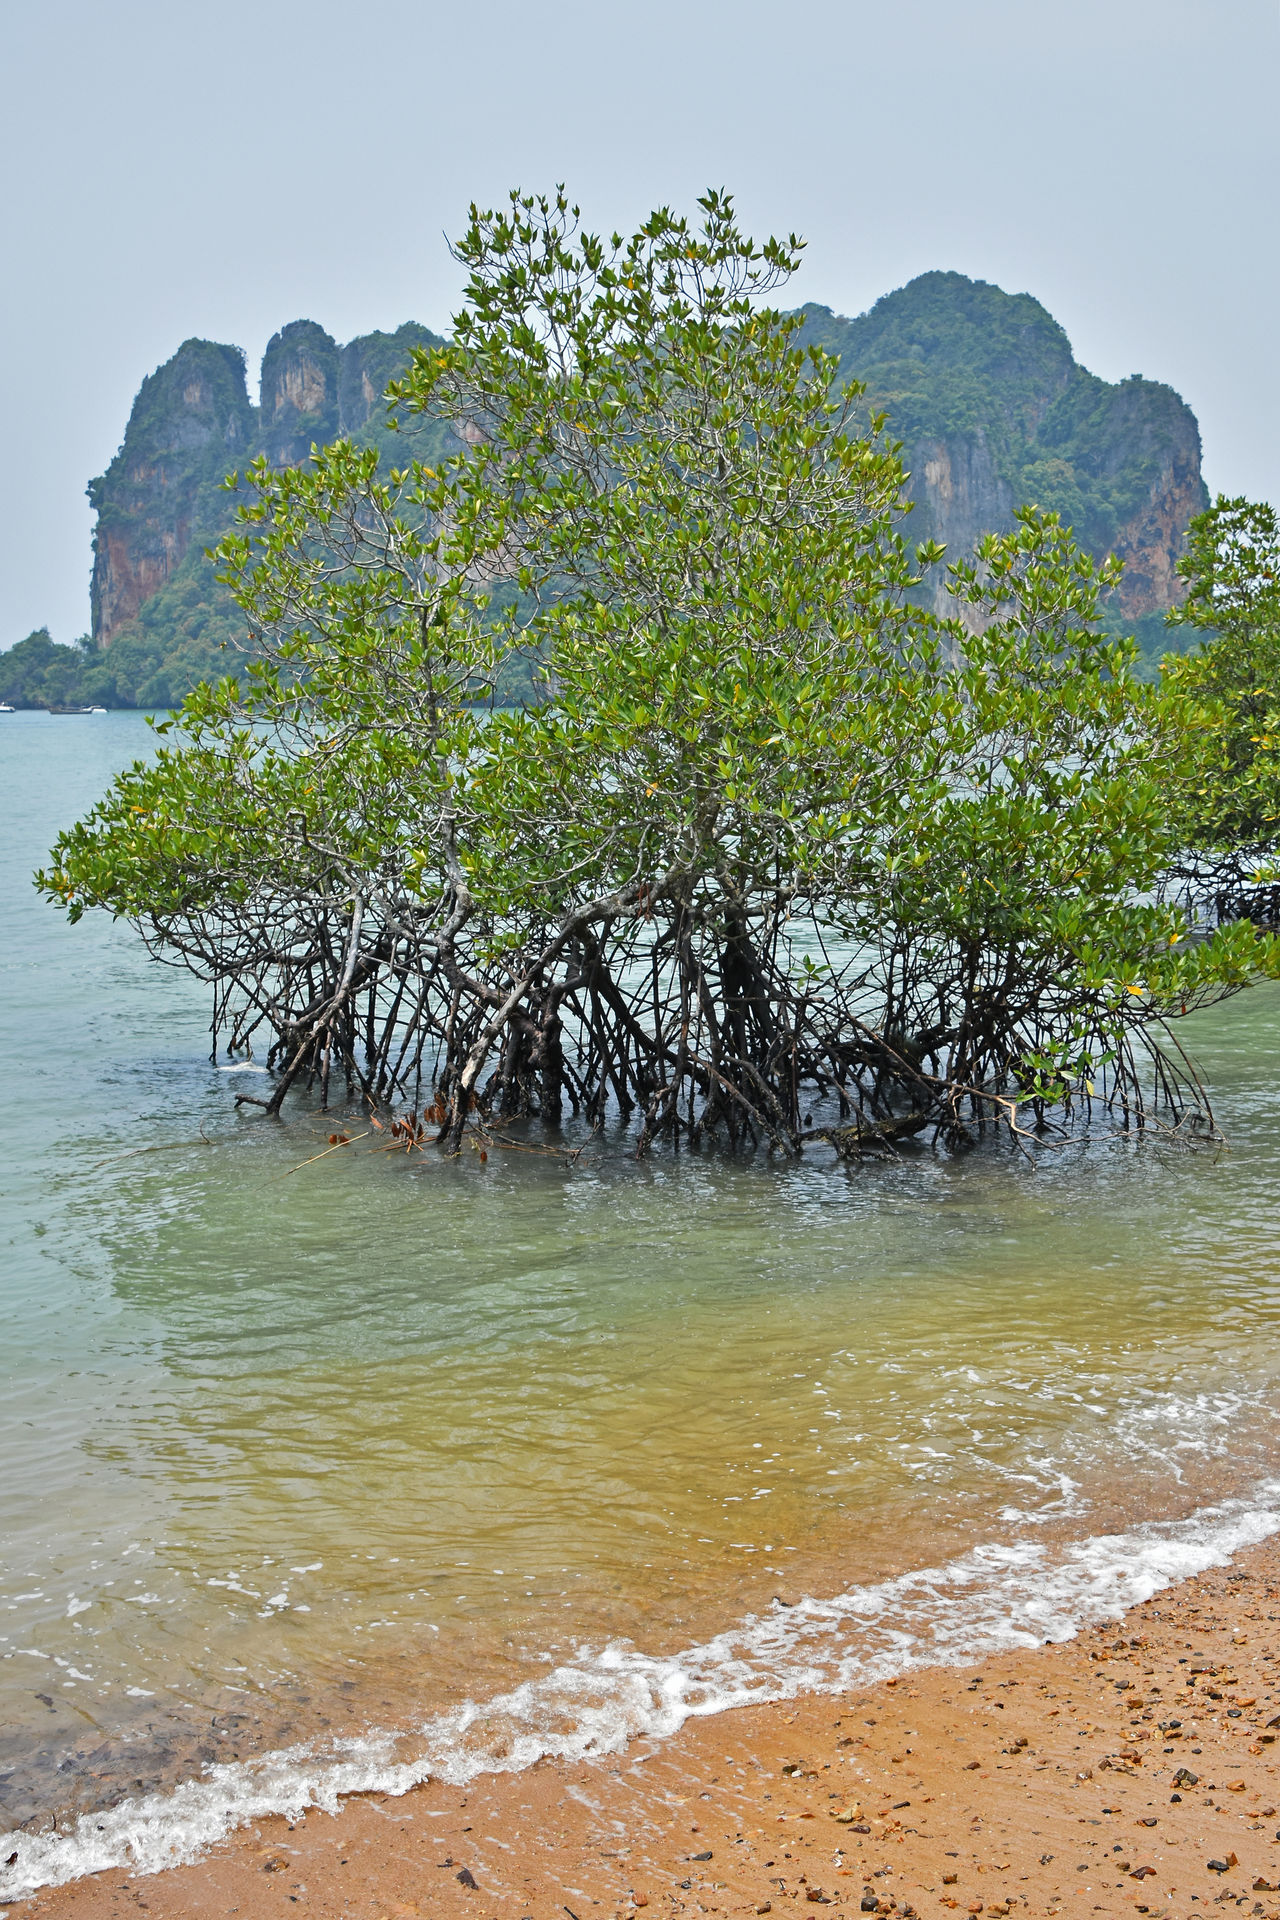 Mangrove trees at coastline of Thailand Bushes Costline Ecology Environment Island Mangrove Mangrove Forest Mangroves Nature Sea Seashore Shore Spotted In Thailand Thai Thailand Trees